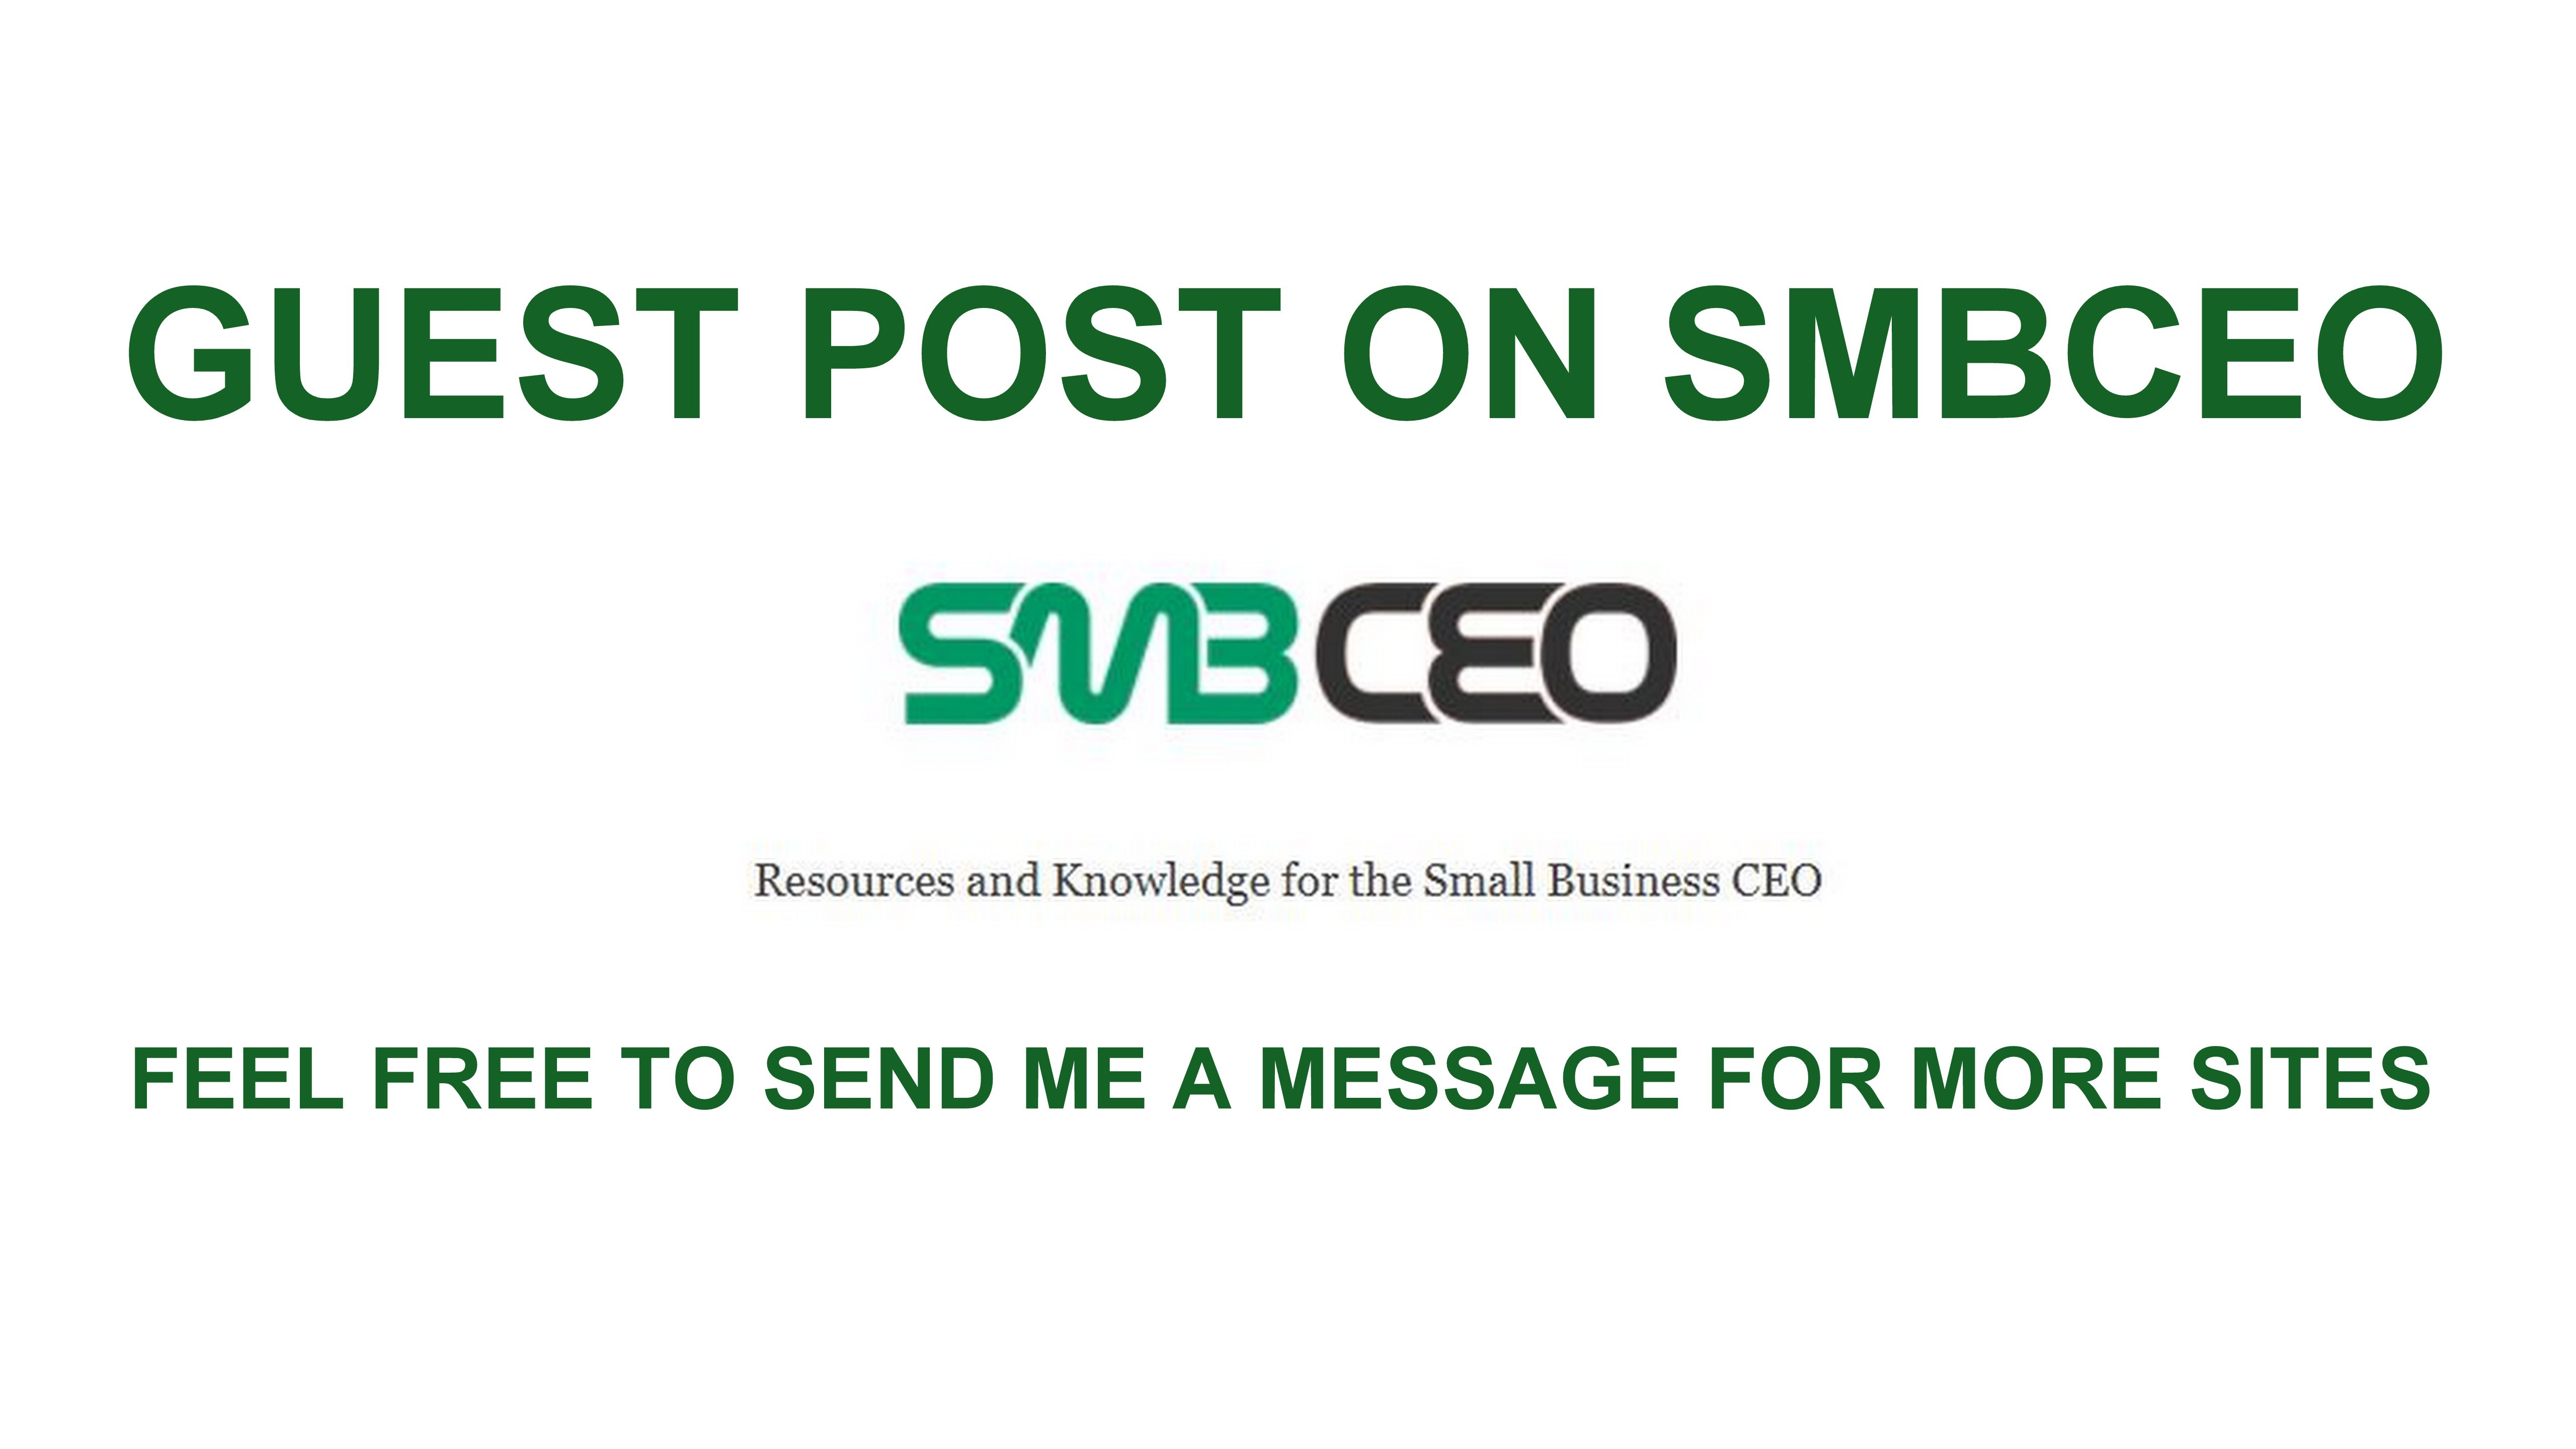 I will publish your business related guest post on www. smbceo. com